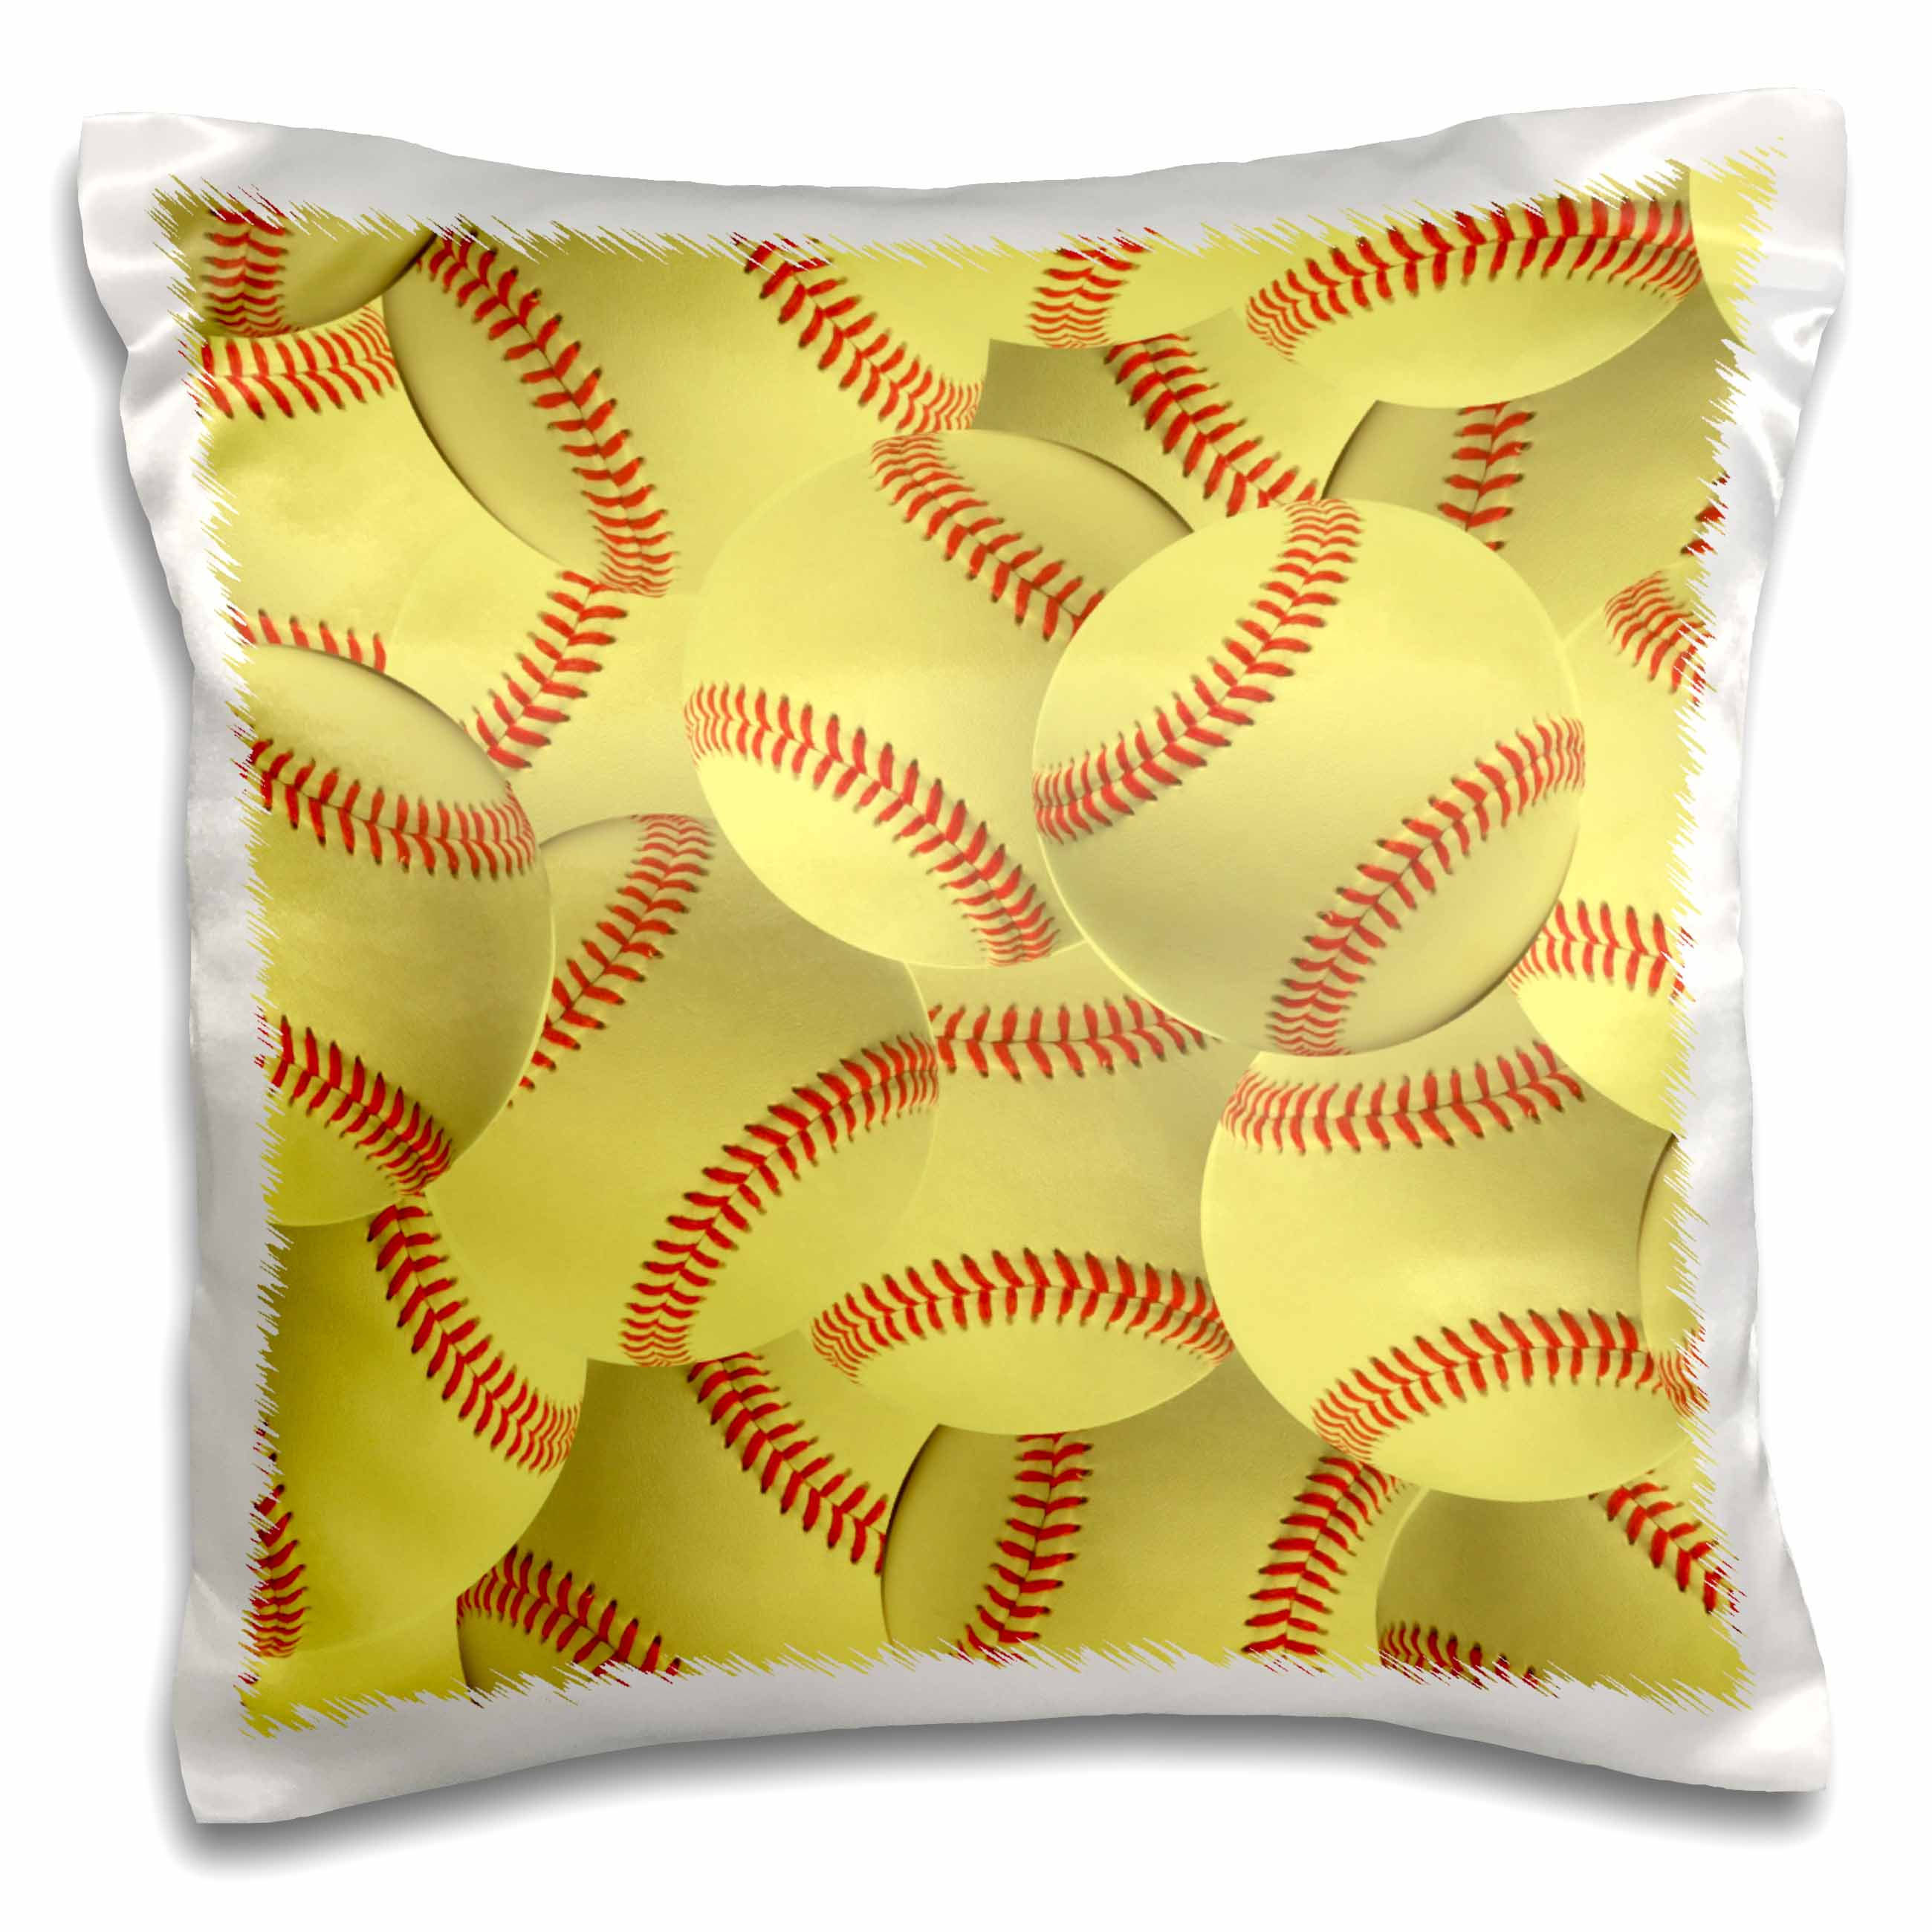 3dRose Softball pattern - yellow red stitched balls - Soft ball sport - sporty - sporting game - team jock, Pillow Case, 16 by 16-inch